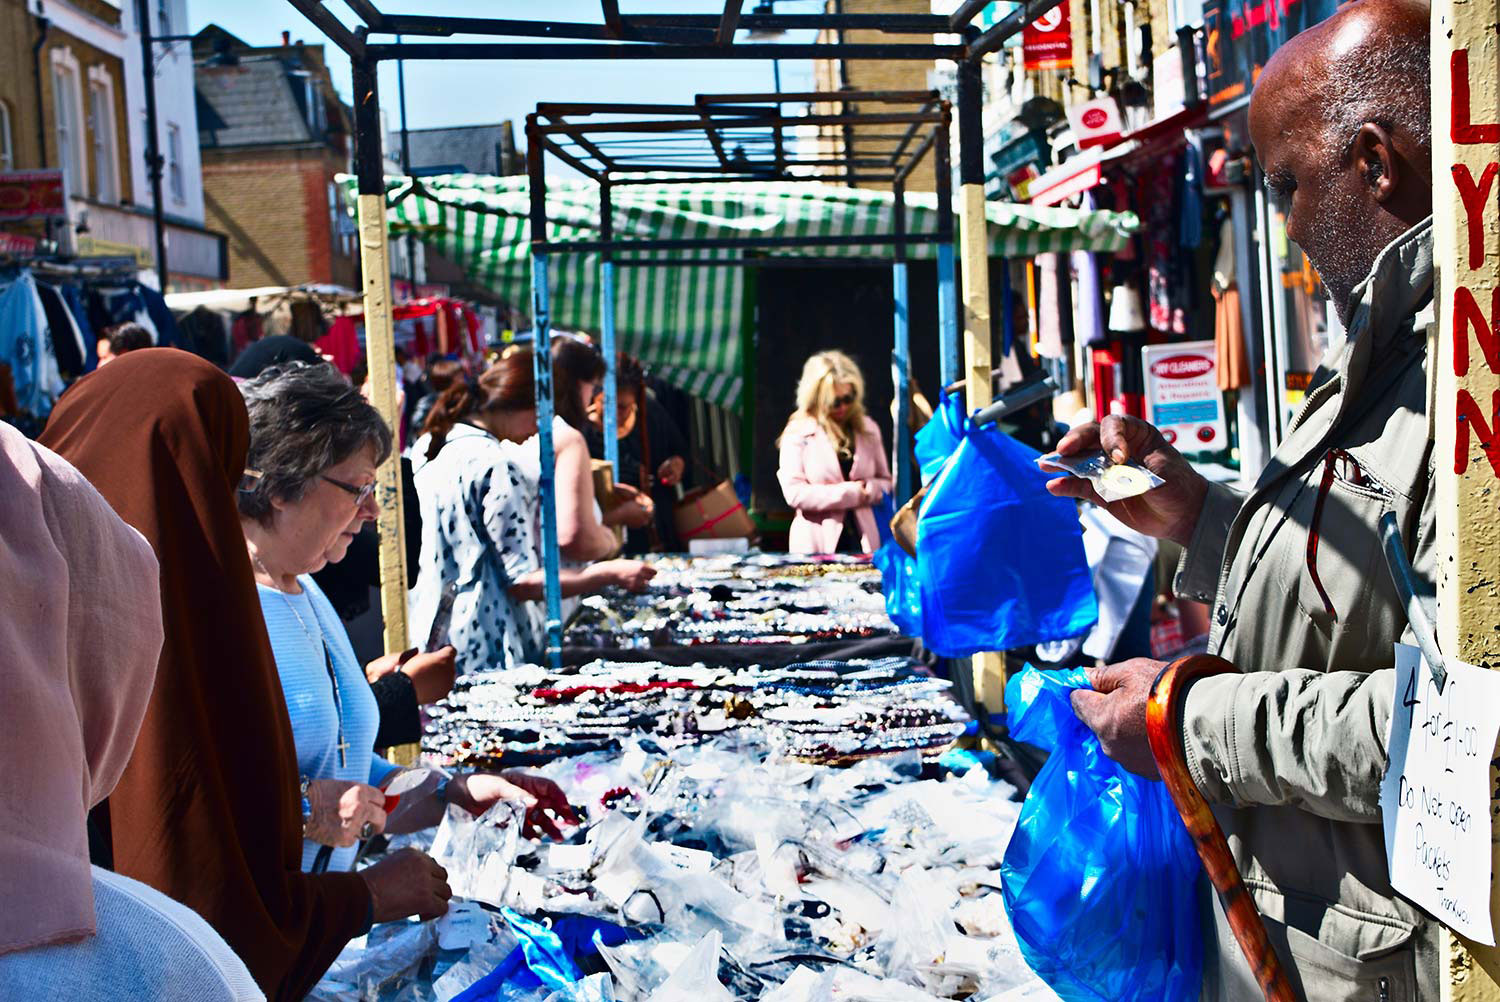 Shoppers buy jewellery at roman road market